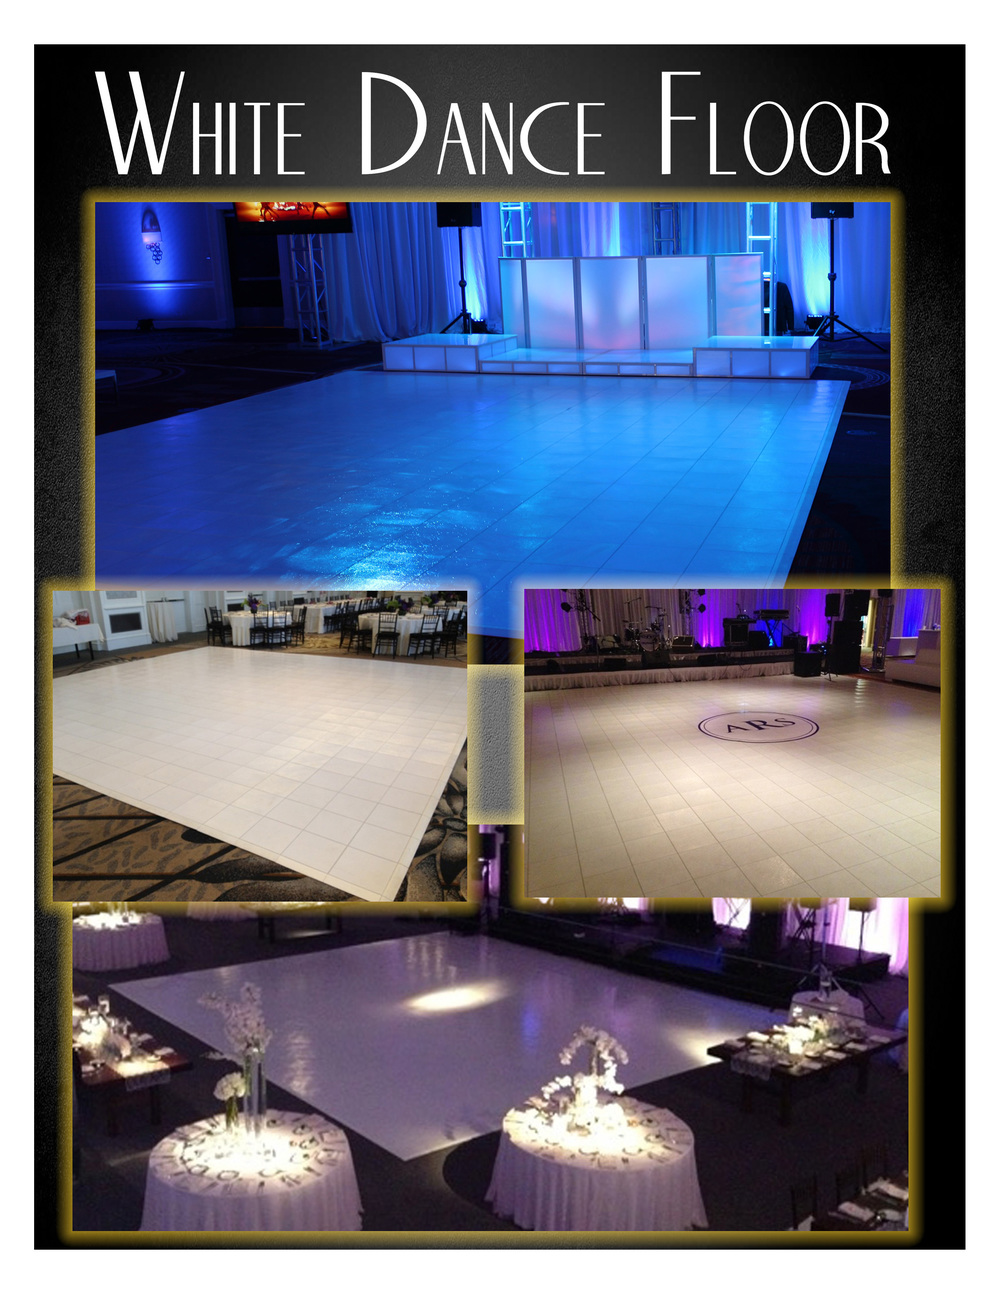 P4_White Dance Floor.jpg